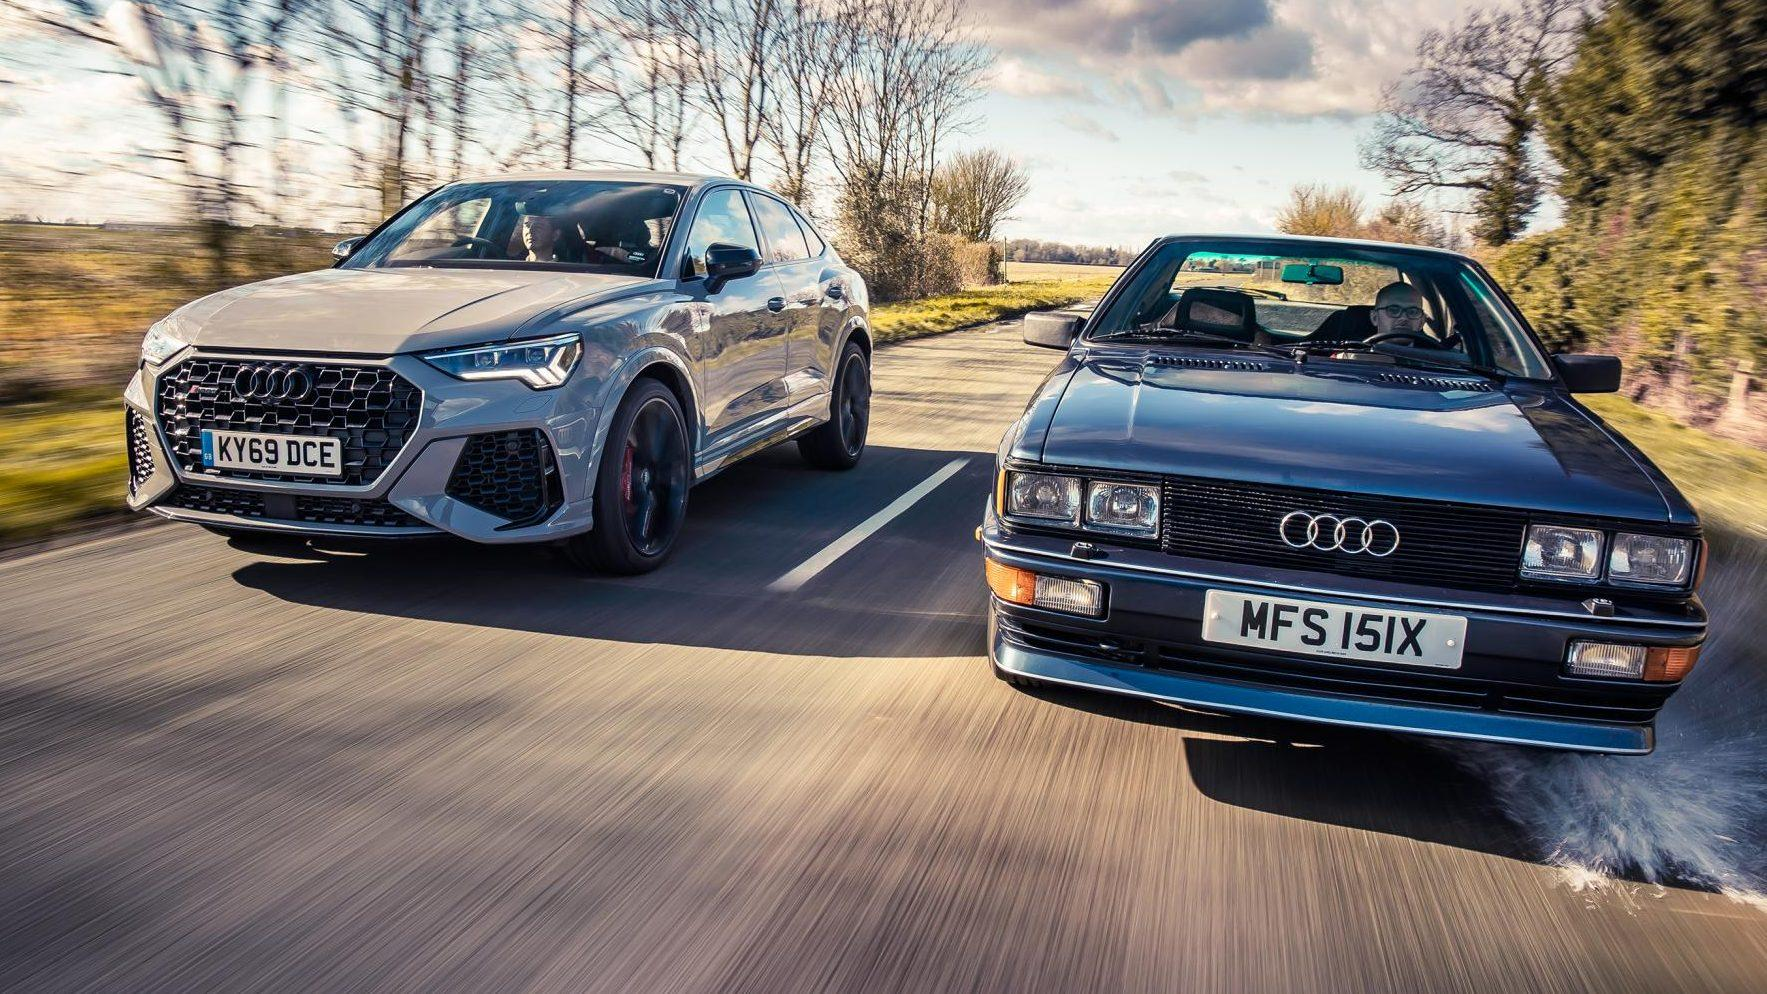 Audi RS Q3 (2020) vs Audi Quattro (1980)